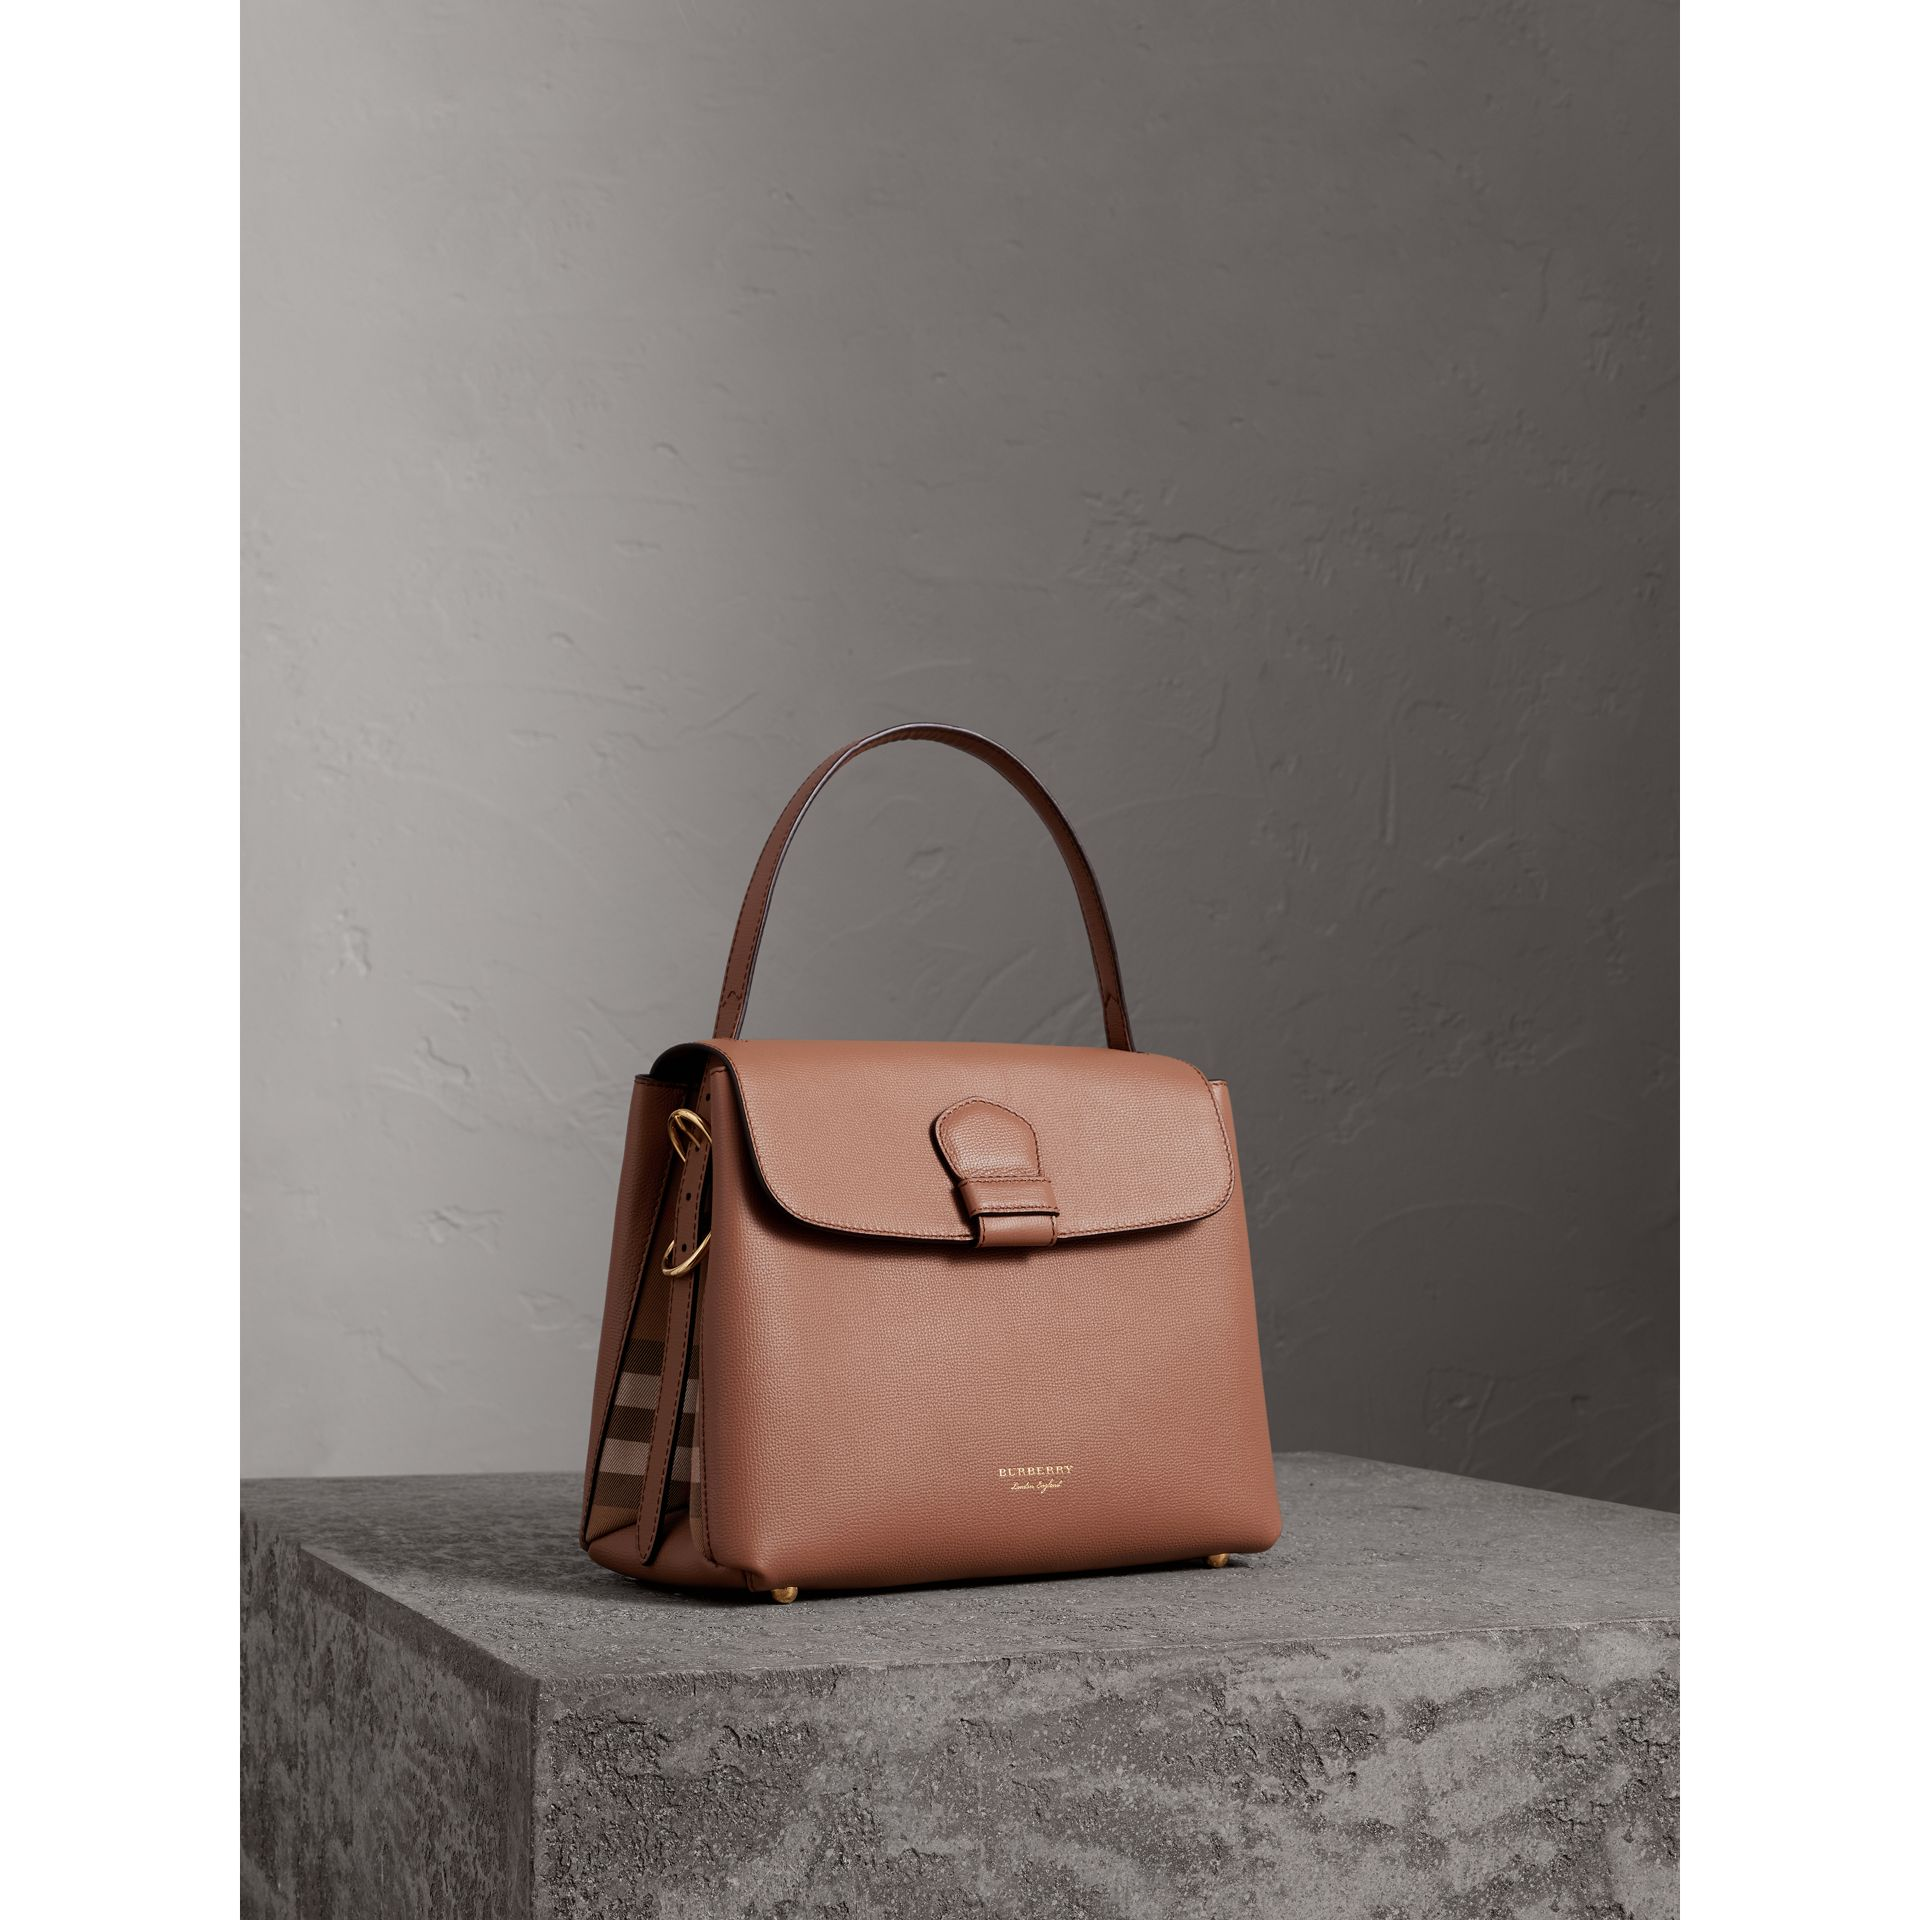 Medium Grainy Leather and House Check Tote Bag in Dark Sand - Women | Burberry Singapore - gallery image 0